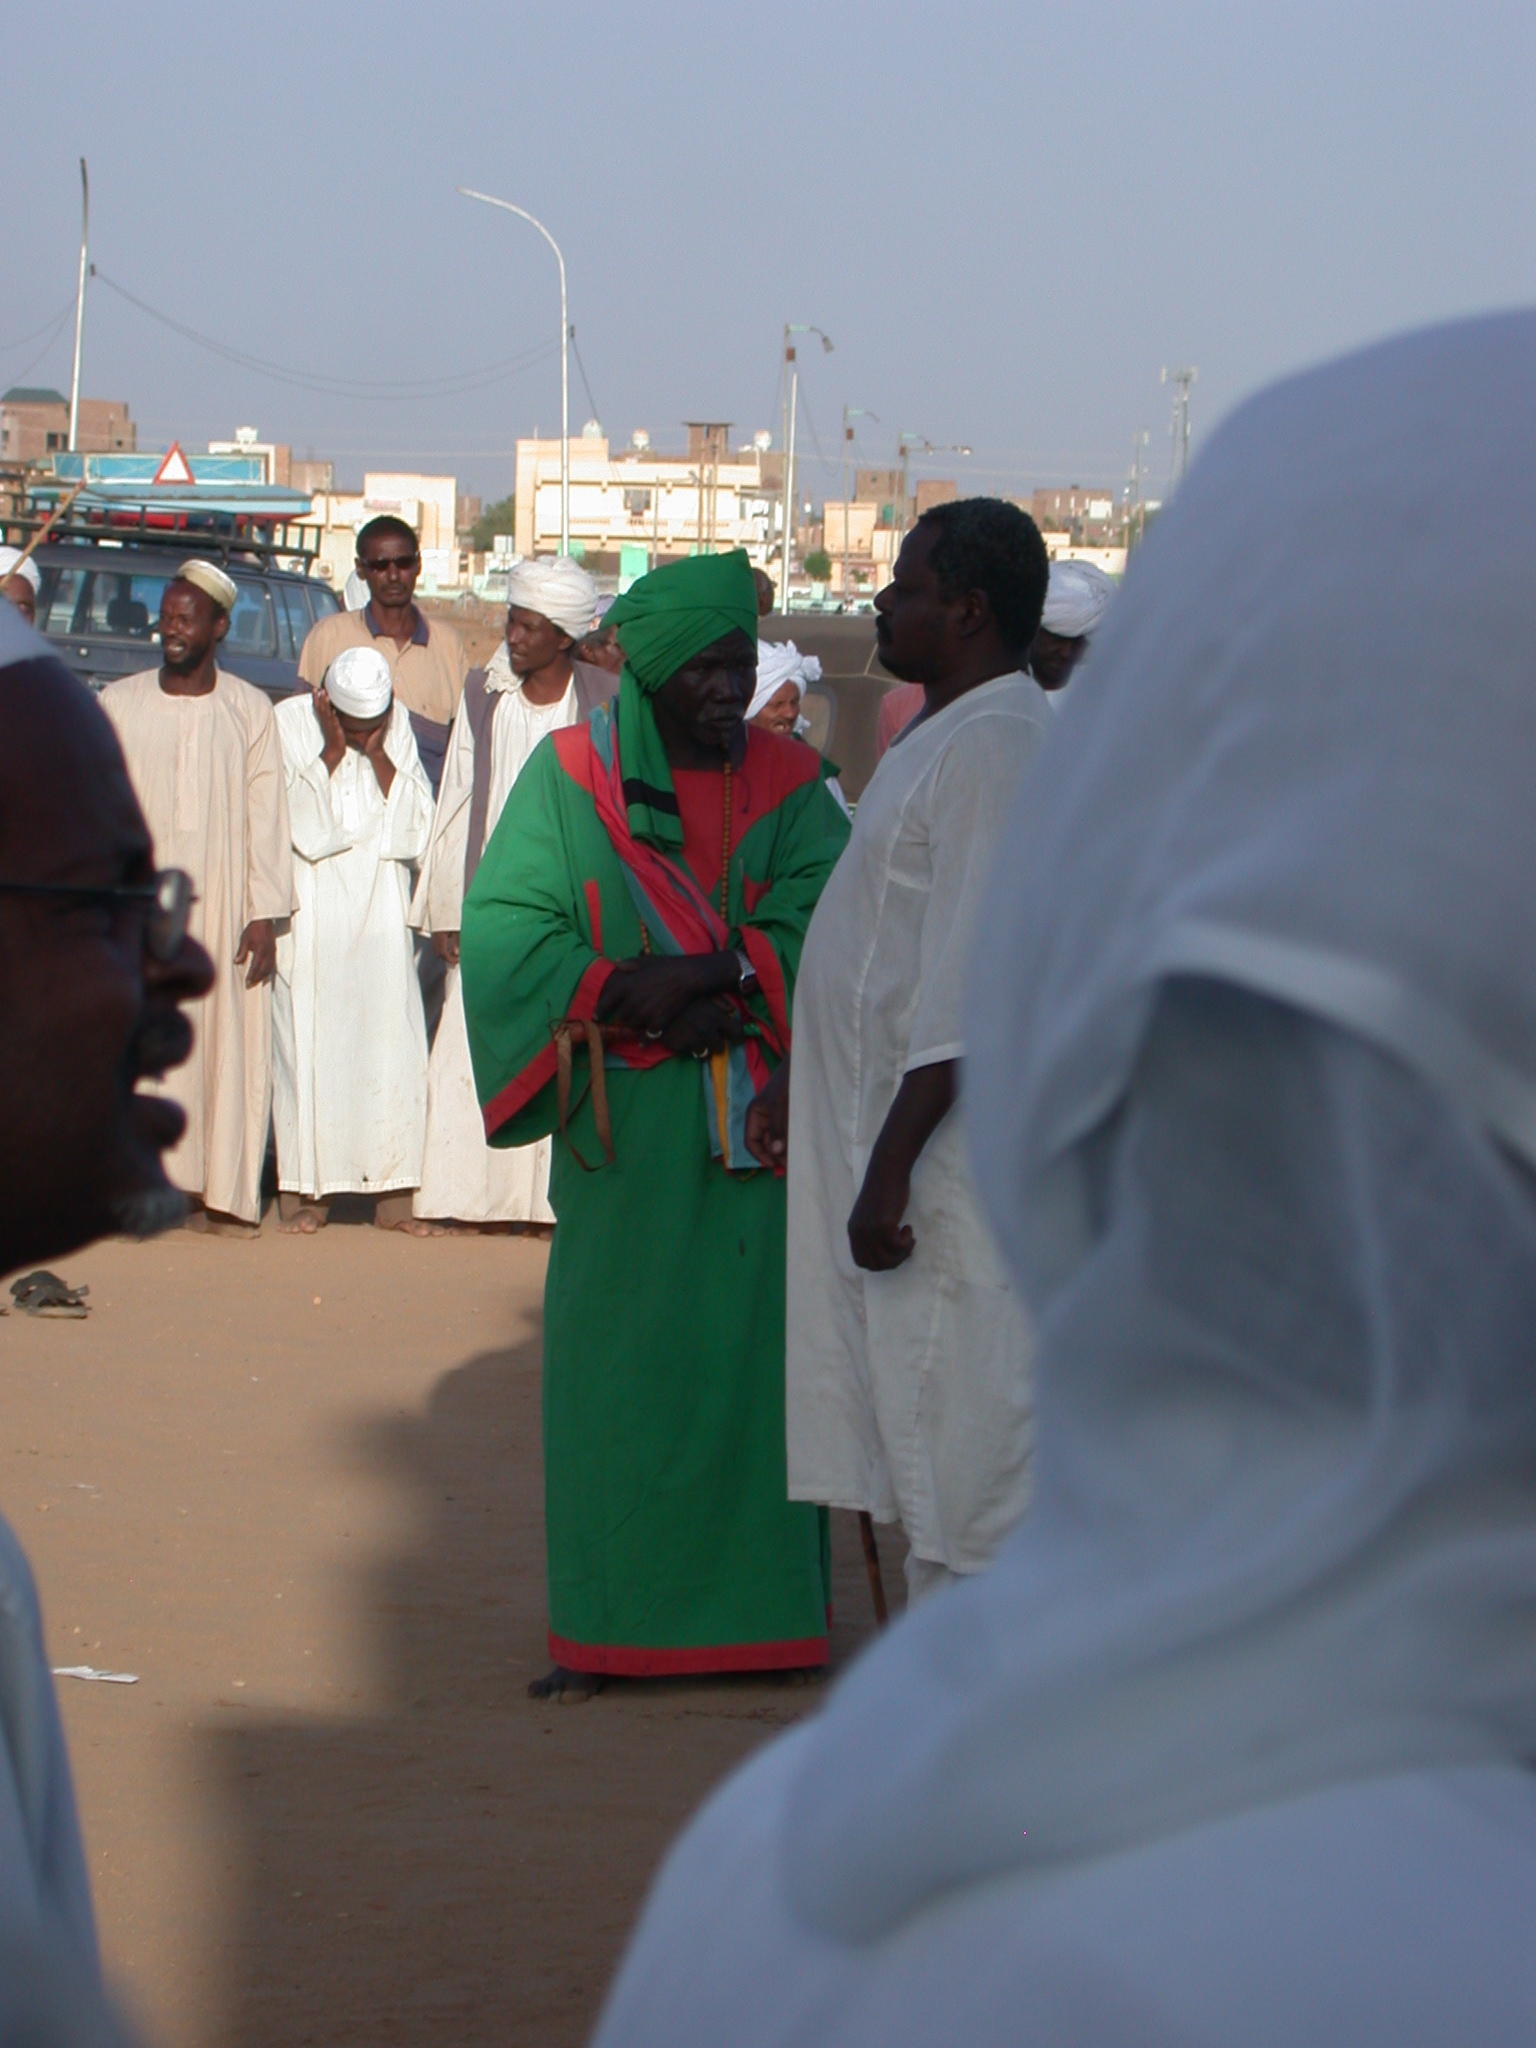 Sufi at Sufi Dancing Site, Omdurman, Sudan